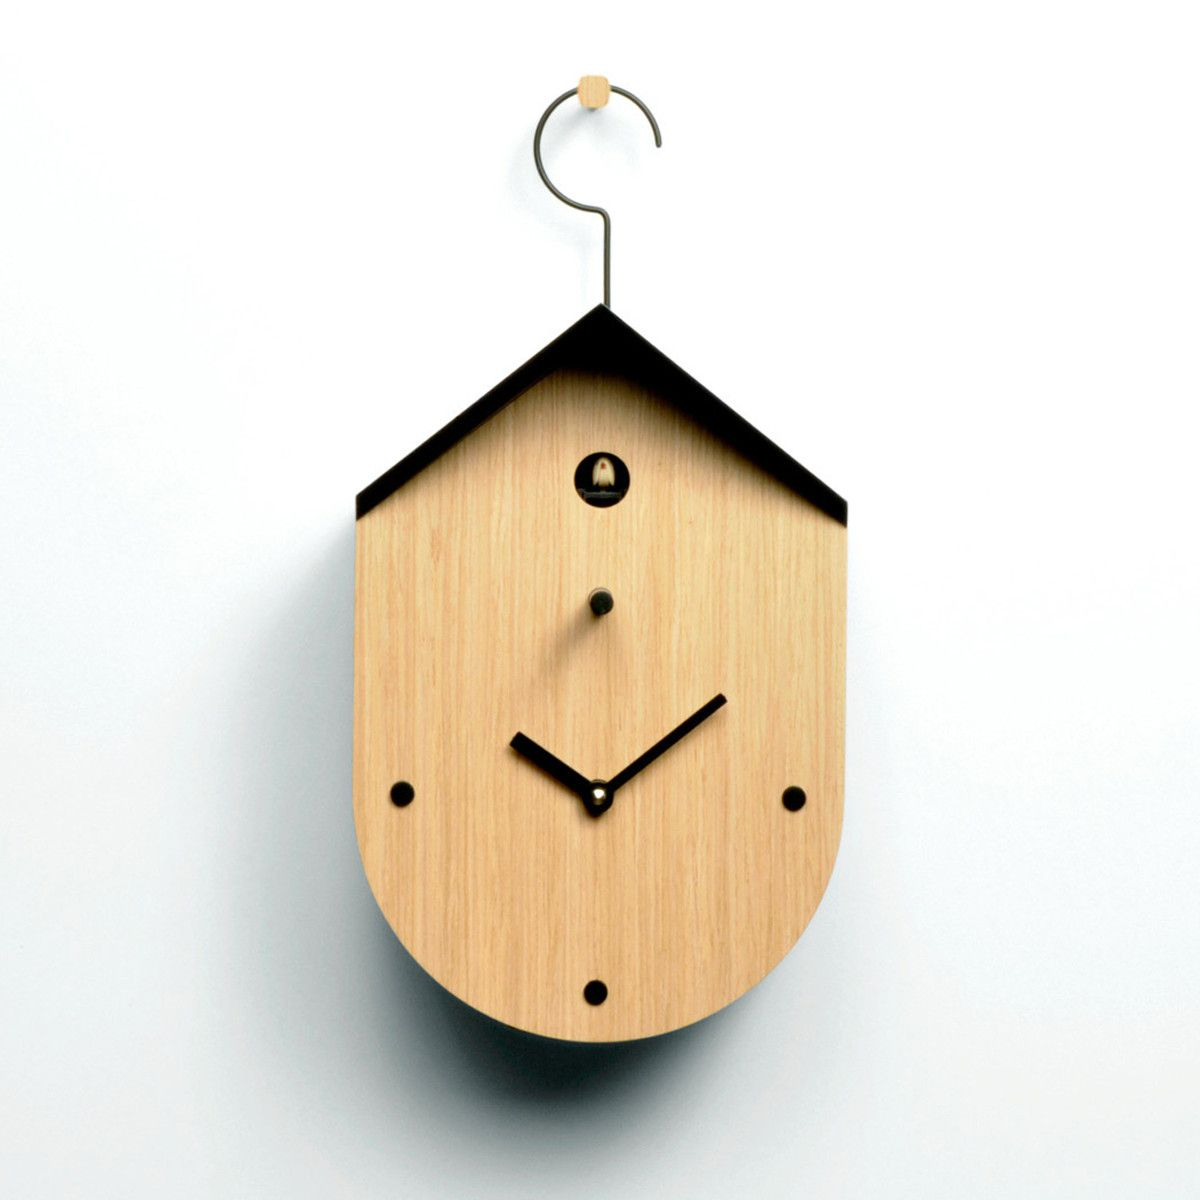 Cool Cuckoo Clocks Free Time Cucu Wall Clock עבור אור Modern Cuckoo